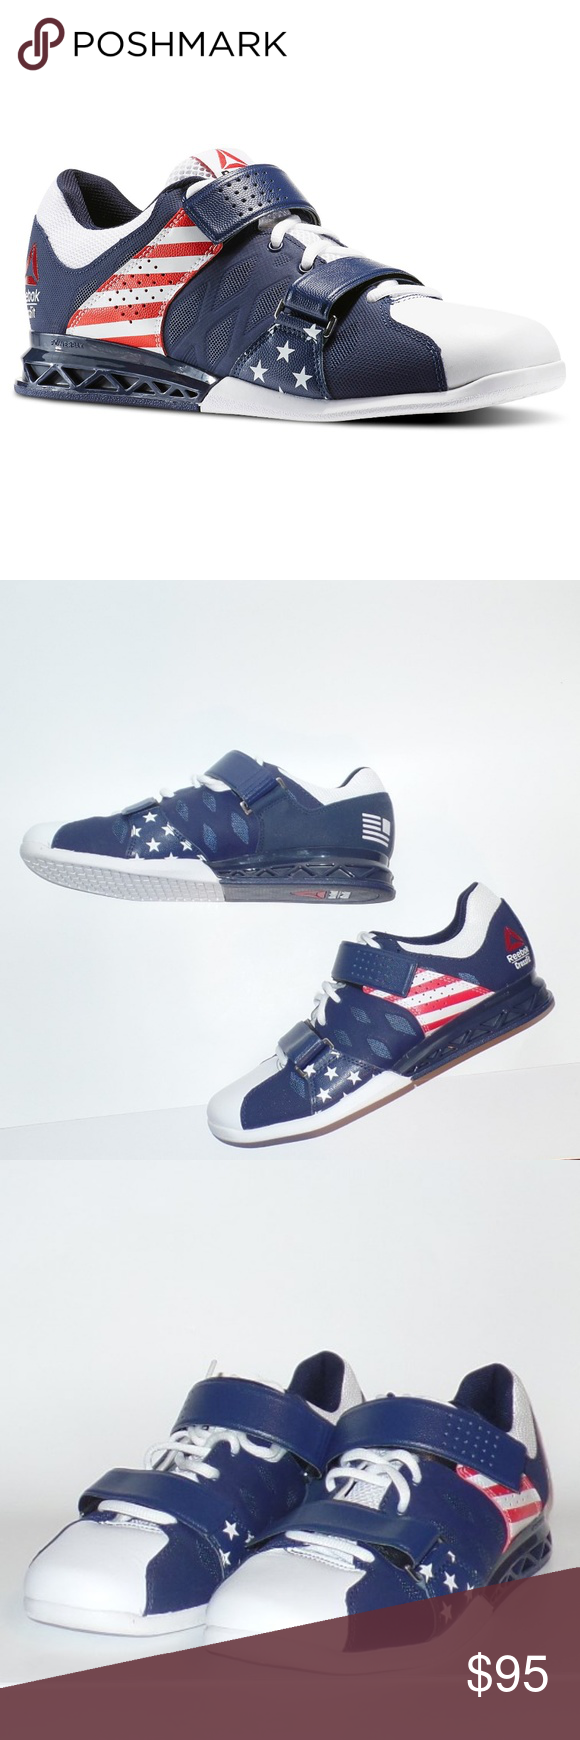 5b6ae9a30a1d5b Reebok Crossfit Lifters Plus 2.0 Liberty Pack 9 New without box pair of Reebok  crossfit lifters plus 2.0 Liberty Pack size 9. Lace up with velcro straps  ...